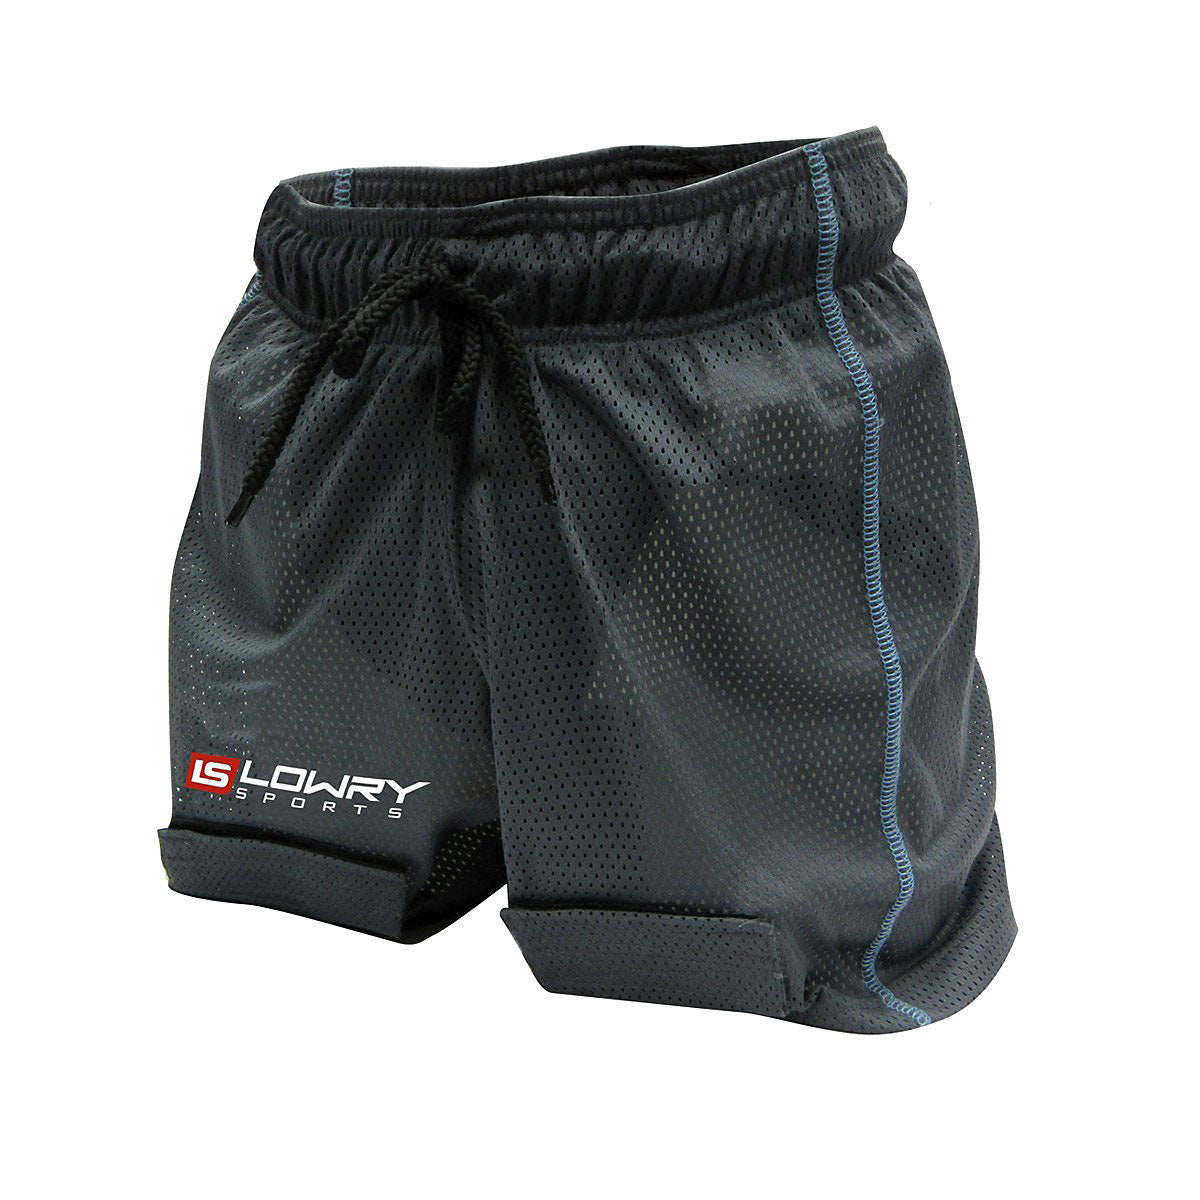 Lowry Mesh Junior Jill Shorts